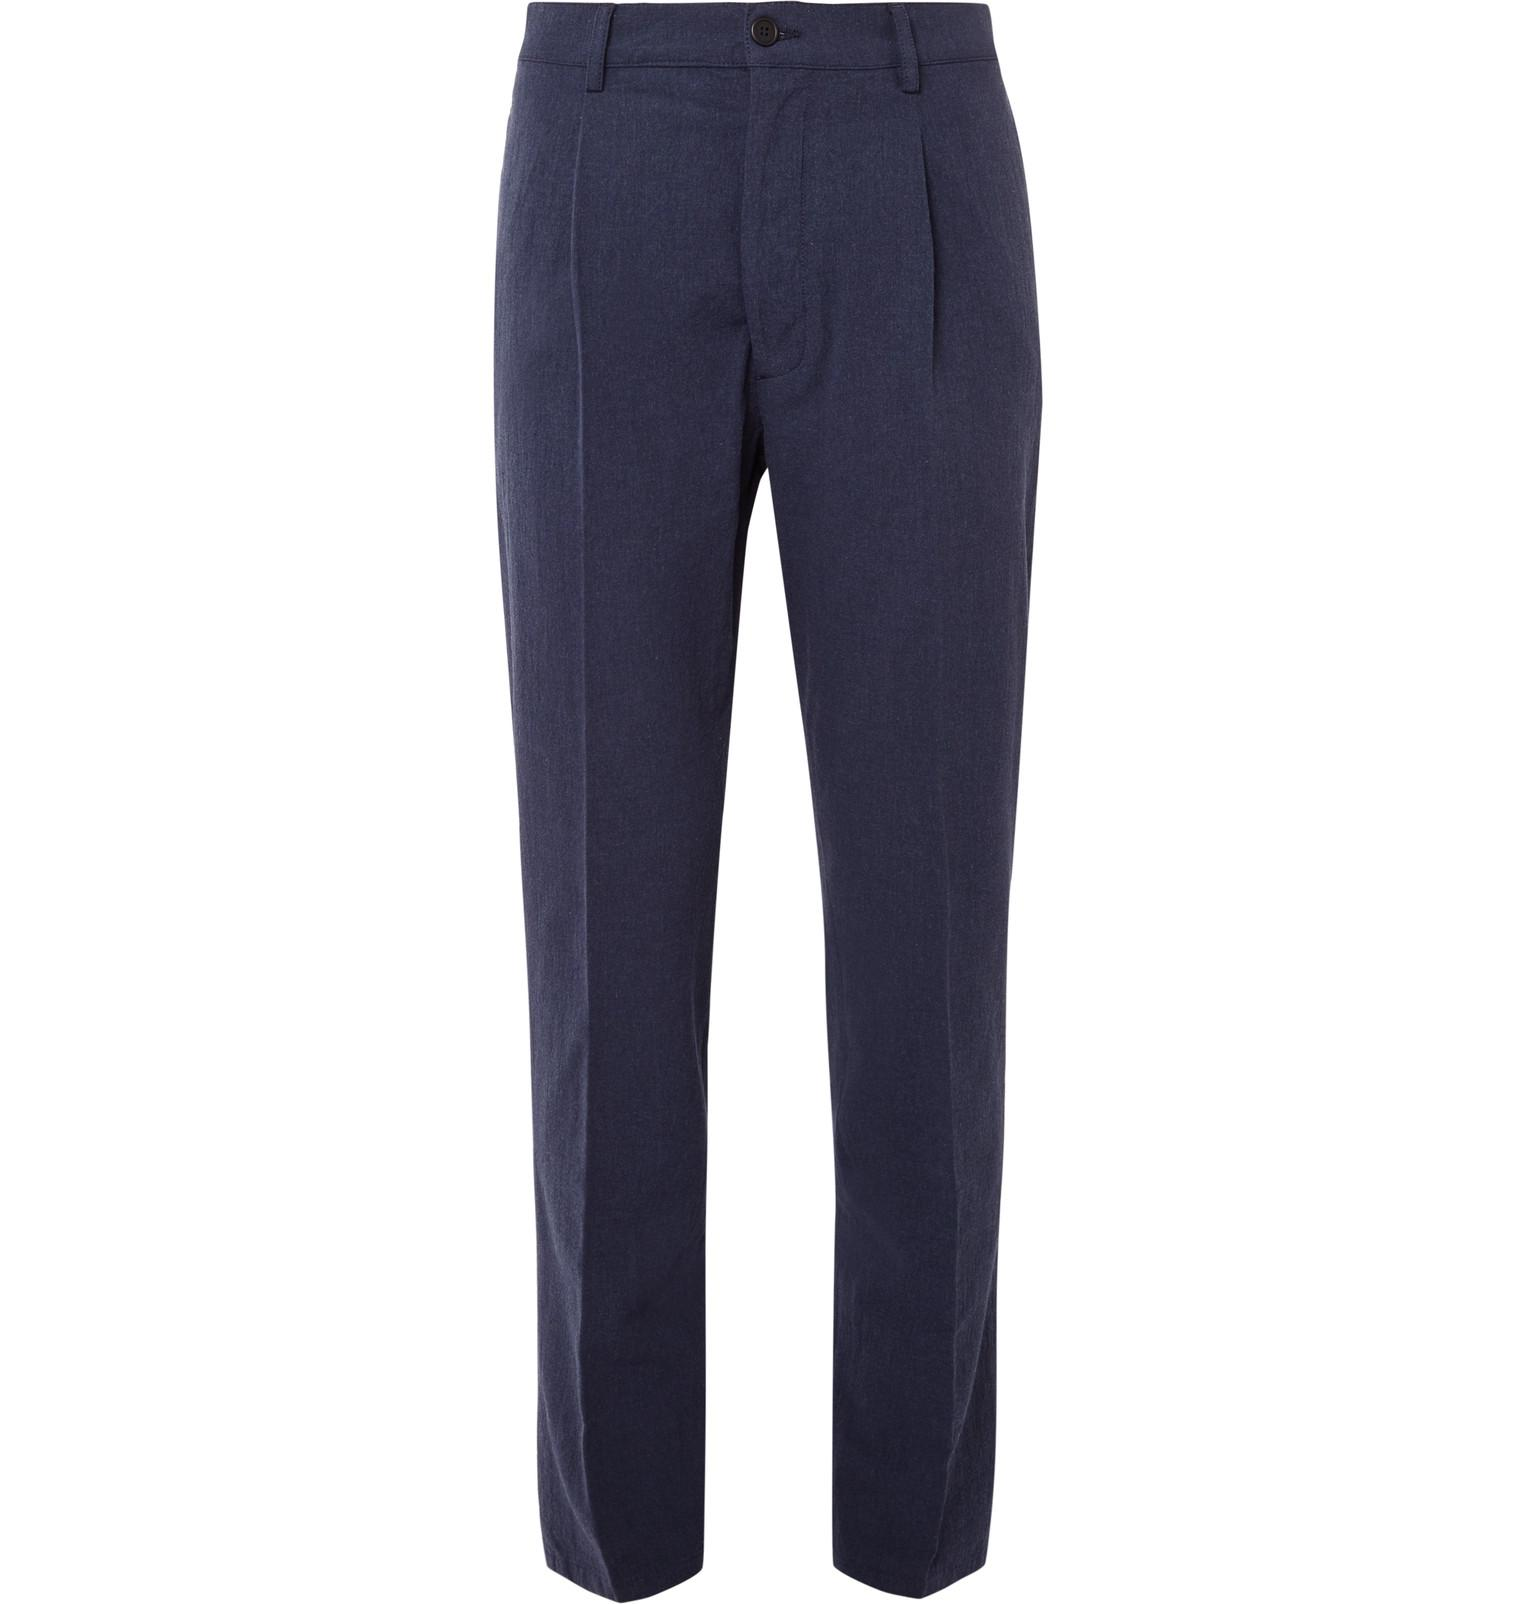 Soho Tapered Pleated Slub Cotton Trousers Altea 2018 New Online f4GfT9AT